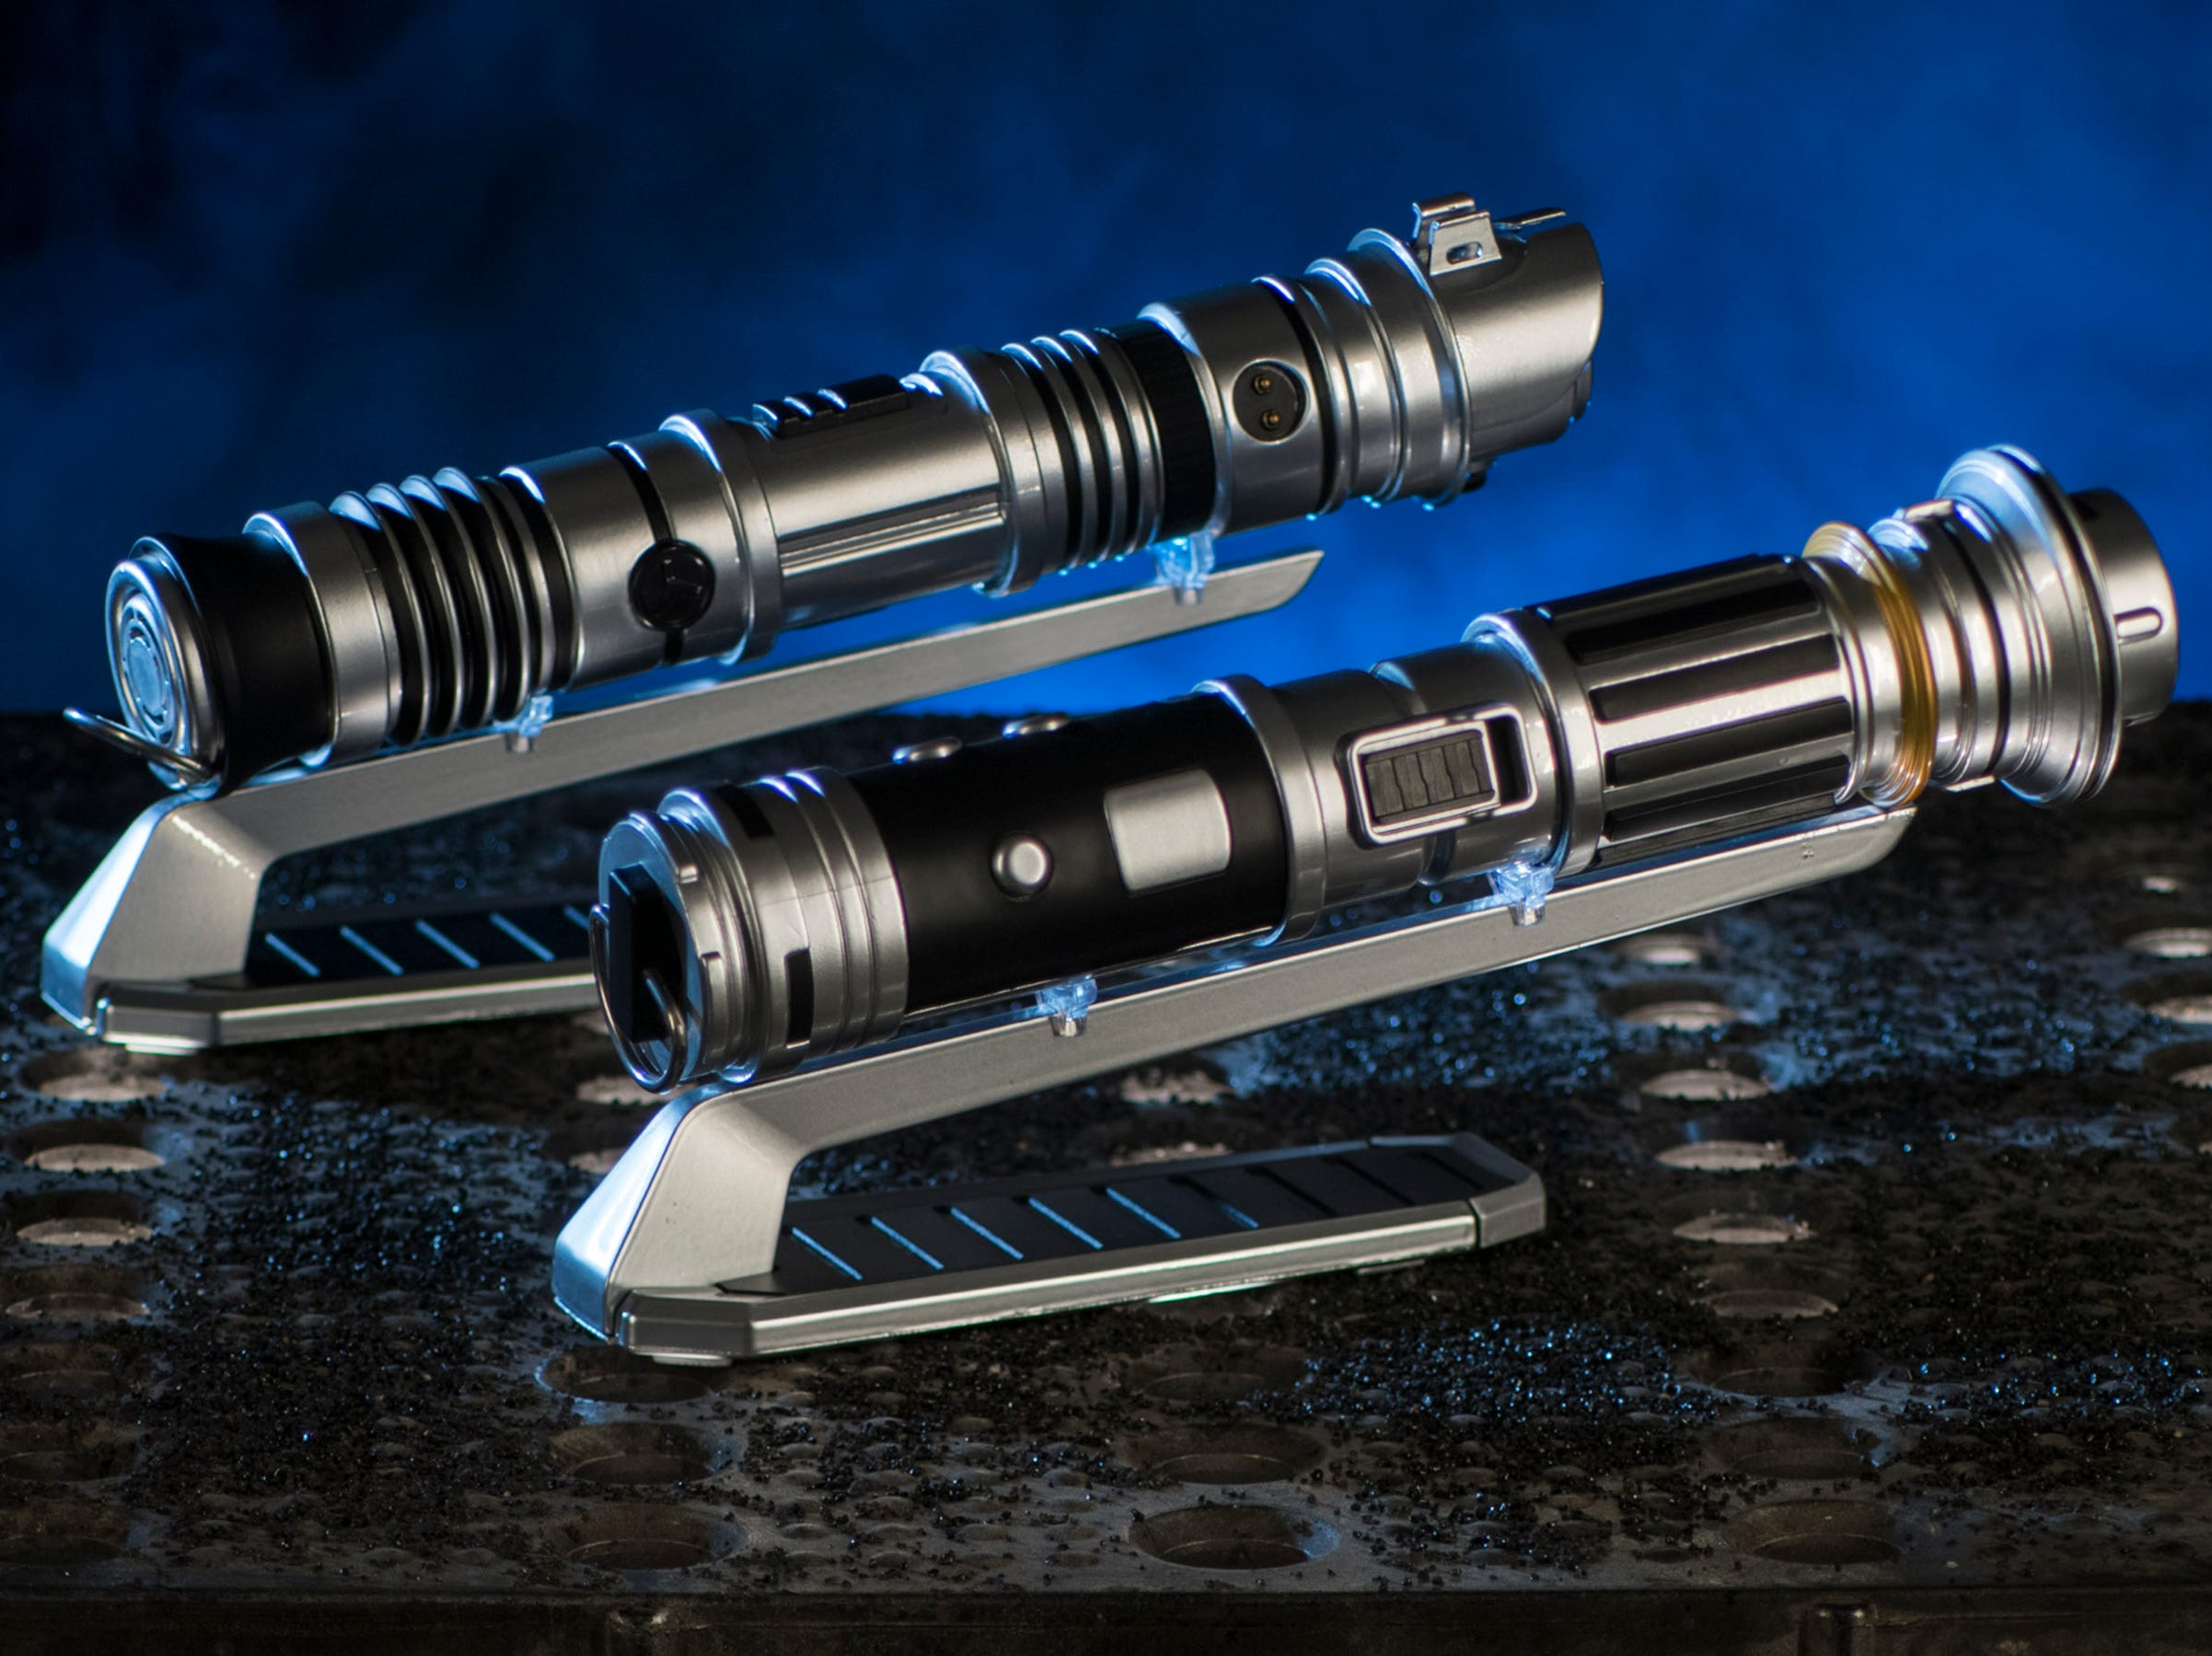 At Savi's Workshop - Handbuilt Lightsabers in Star Wars: Galaxy's Edge, guests will be able to build their own lightsaber, guided by ancient wisdom but crafted by the choices they make on their own adventure. Each build will begin with a personal connection to a kyber crystal used to ignite the custom lightsaber.